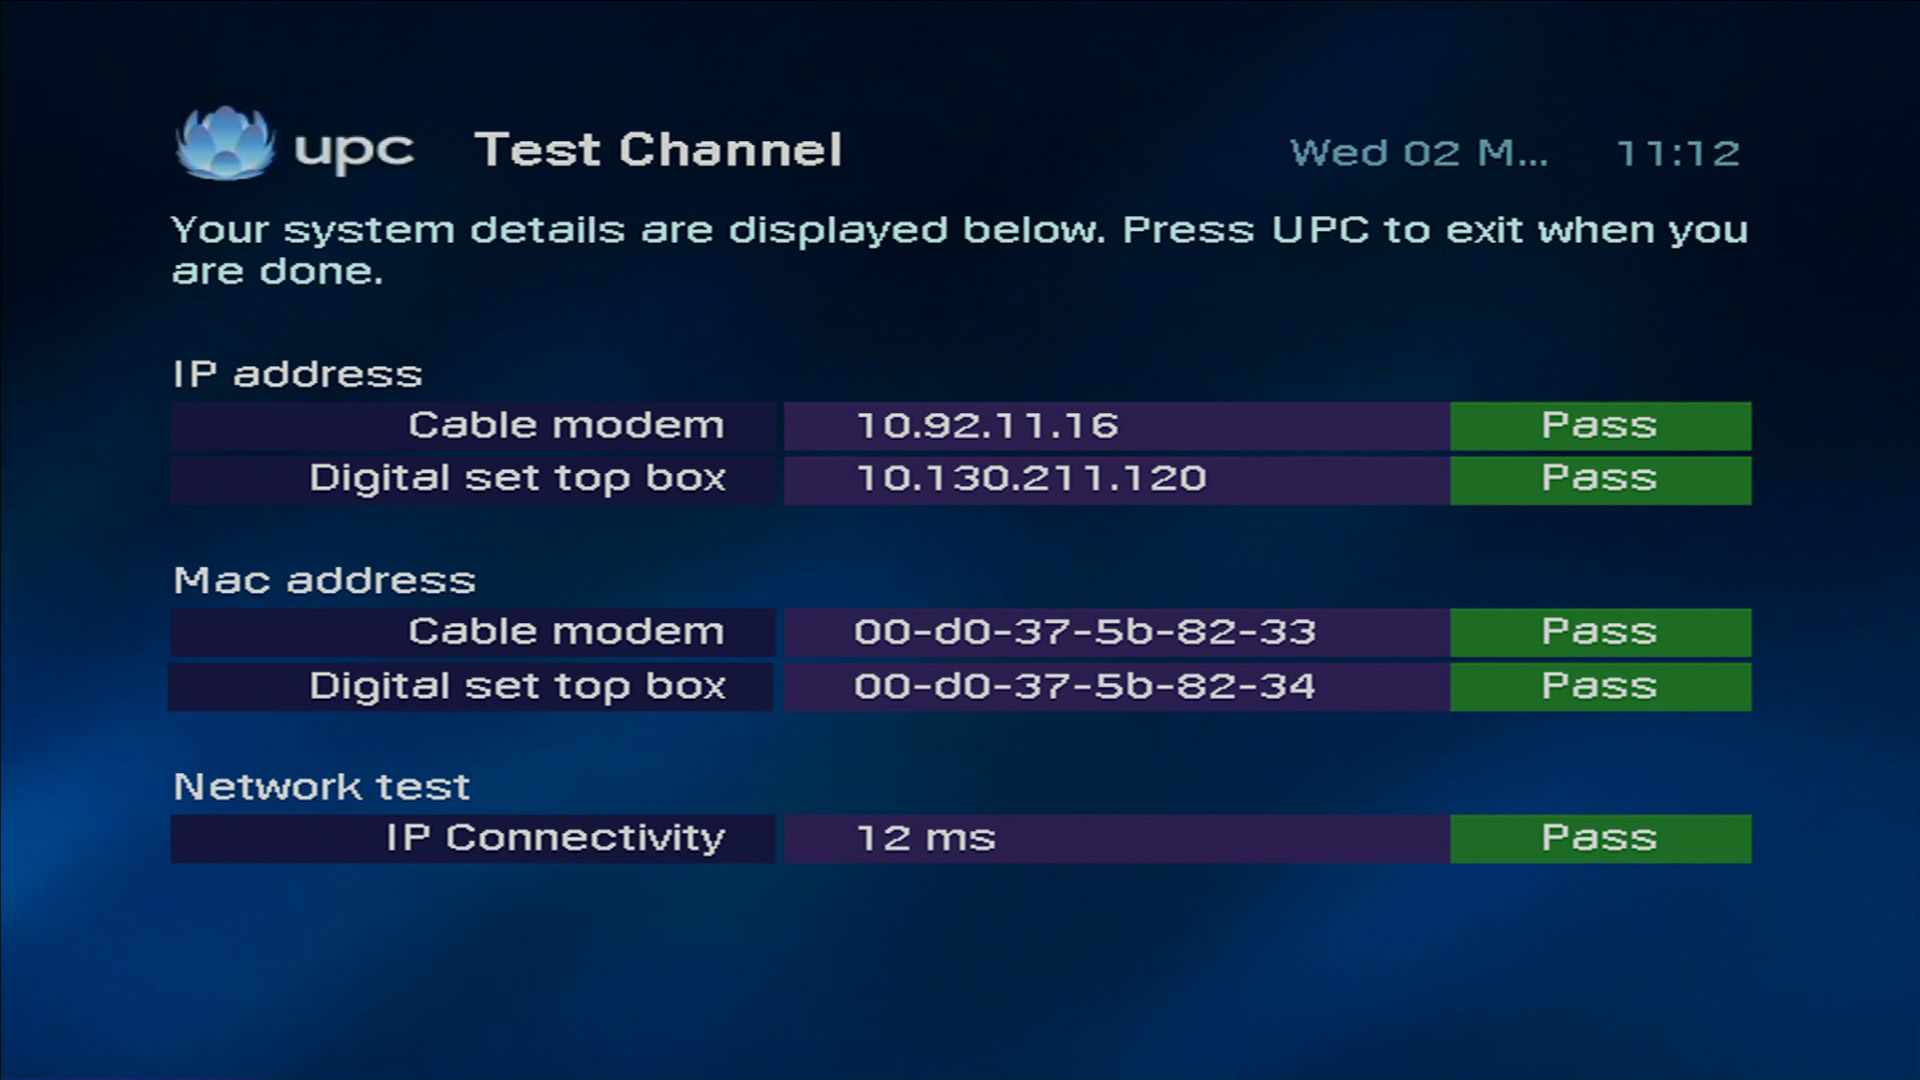 Virgin Media Ip Address >> Upc Confirms Plans To Become Virgin Media In Ireland Her Ie